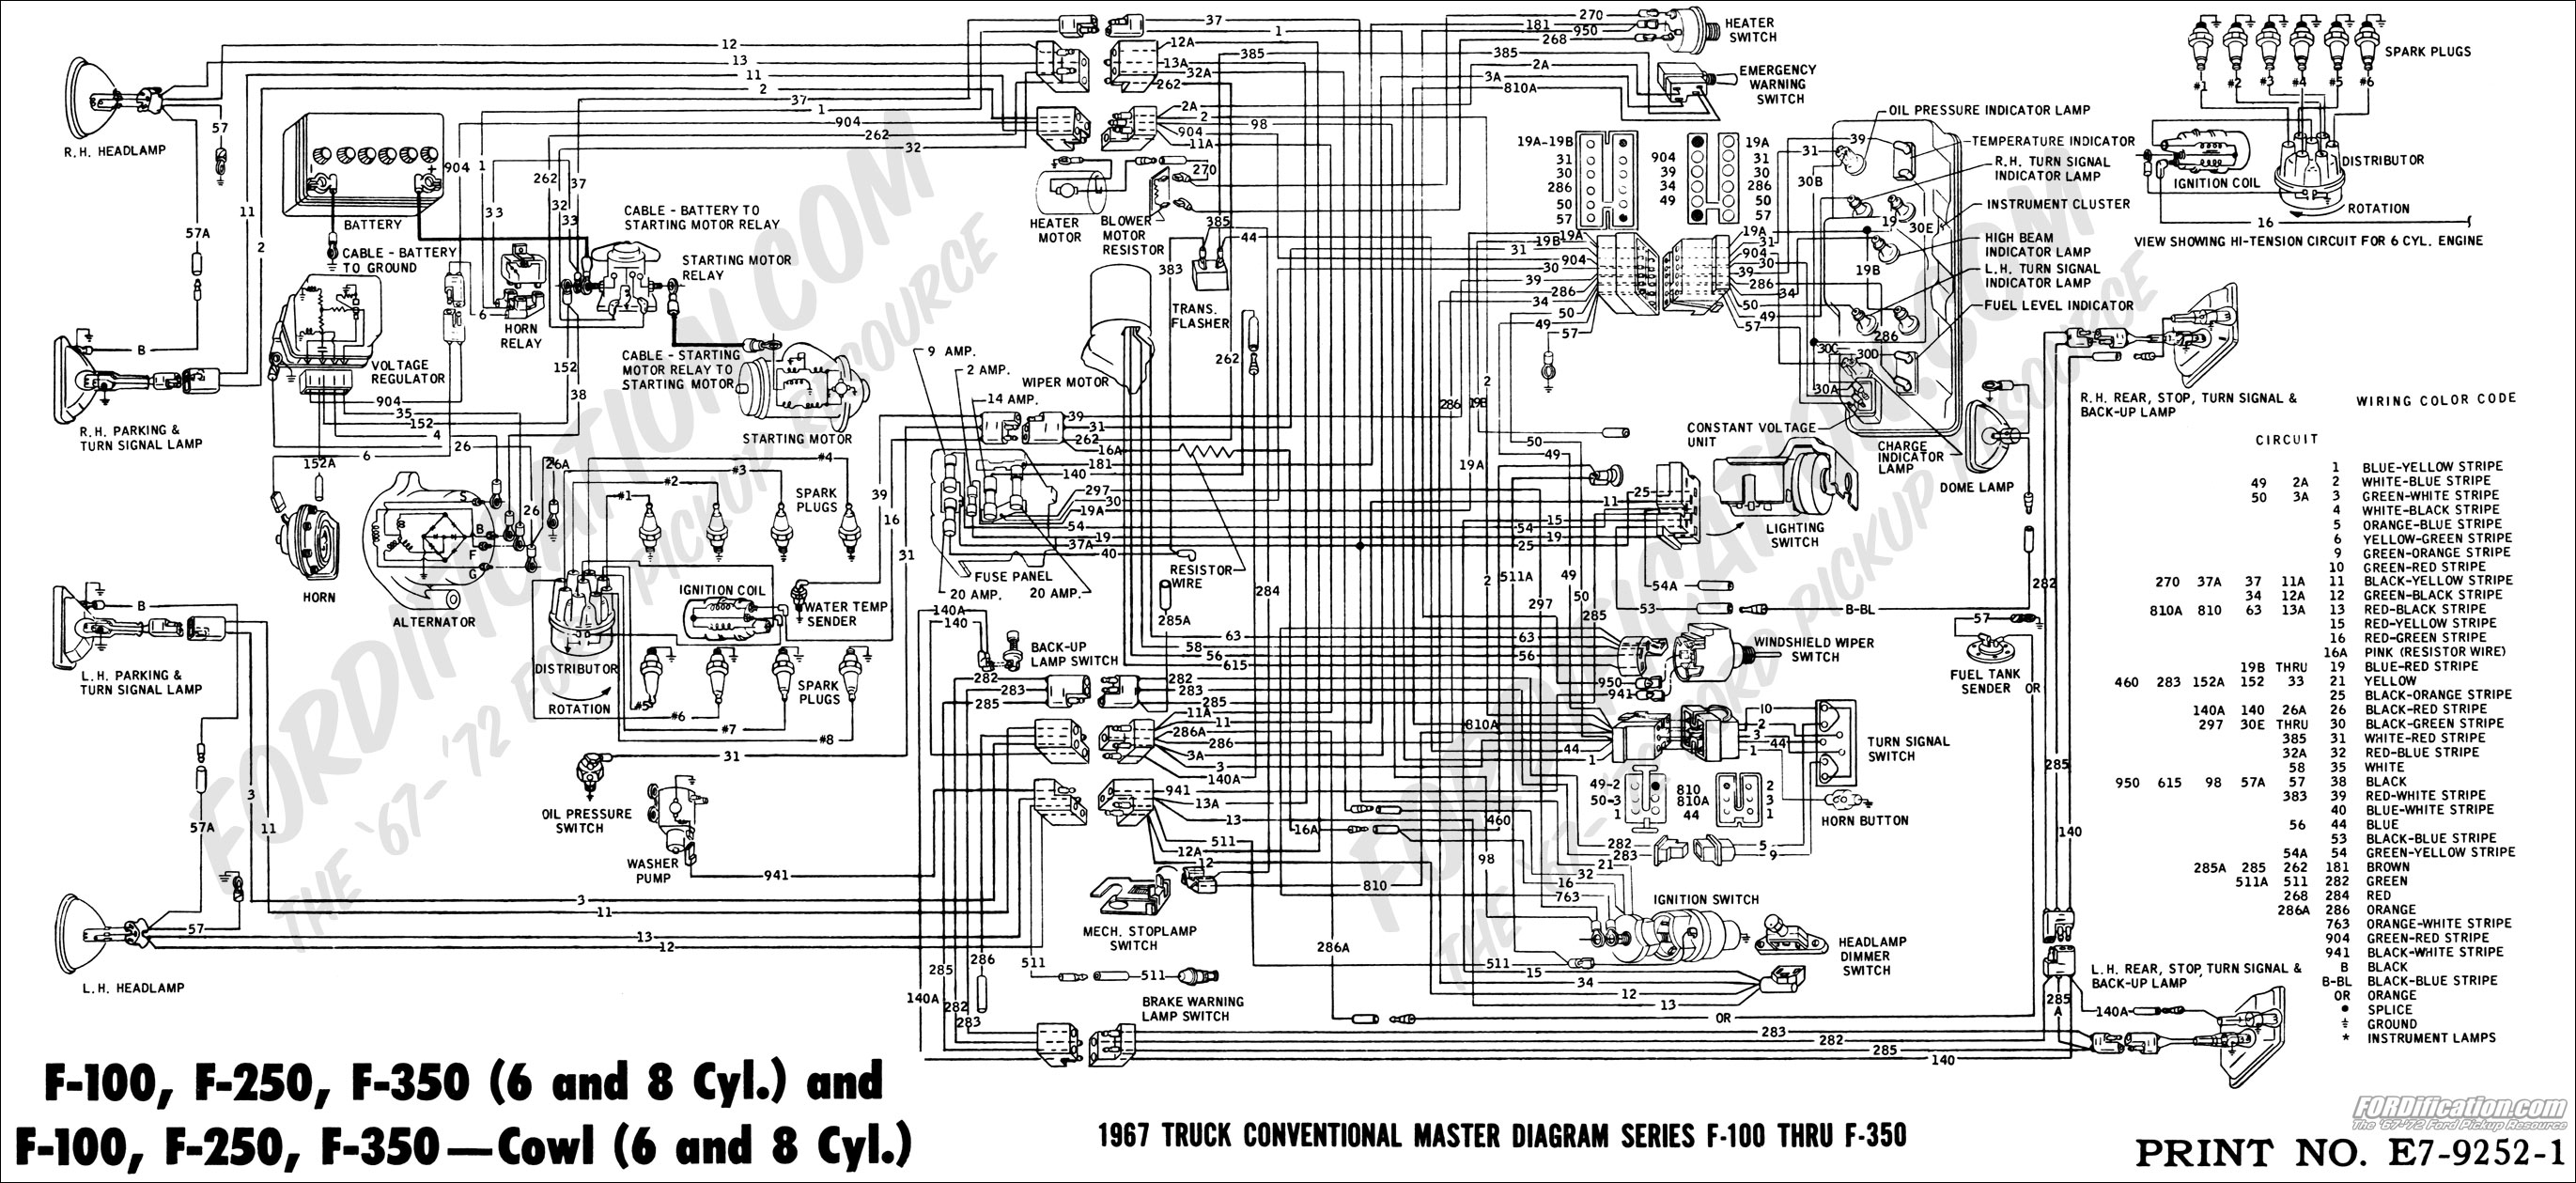 1983 ford f150 fuel gauge wiring diagram motorcycle schematic 1983 ford f150 fuel gauge wiring diagram master wiring diagram 1983 ford f150 fuel